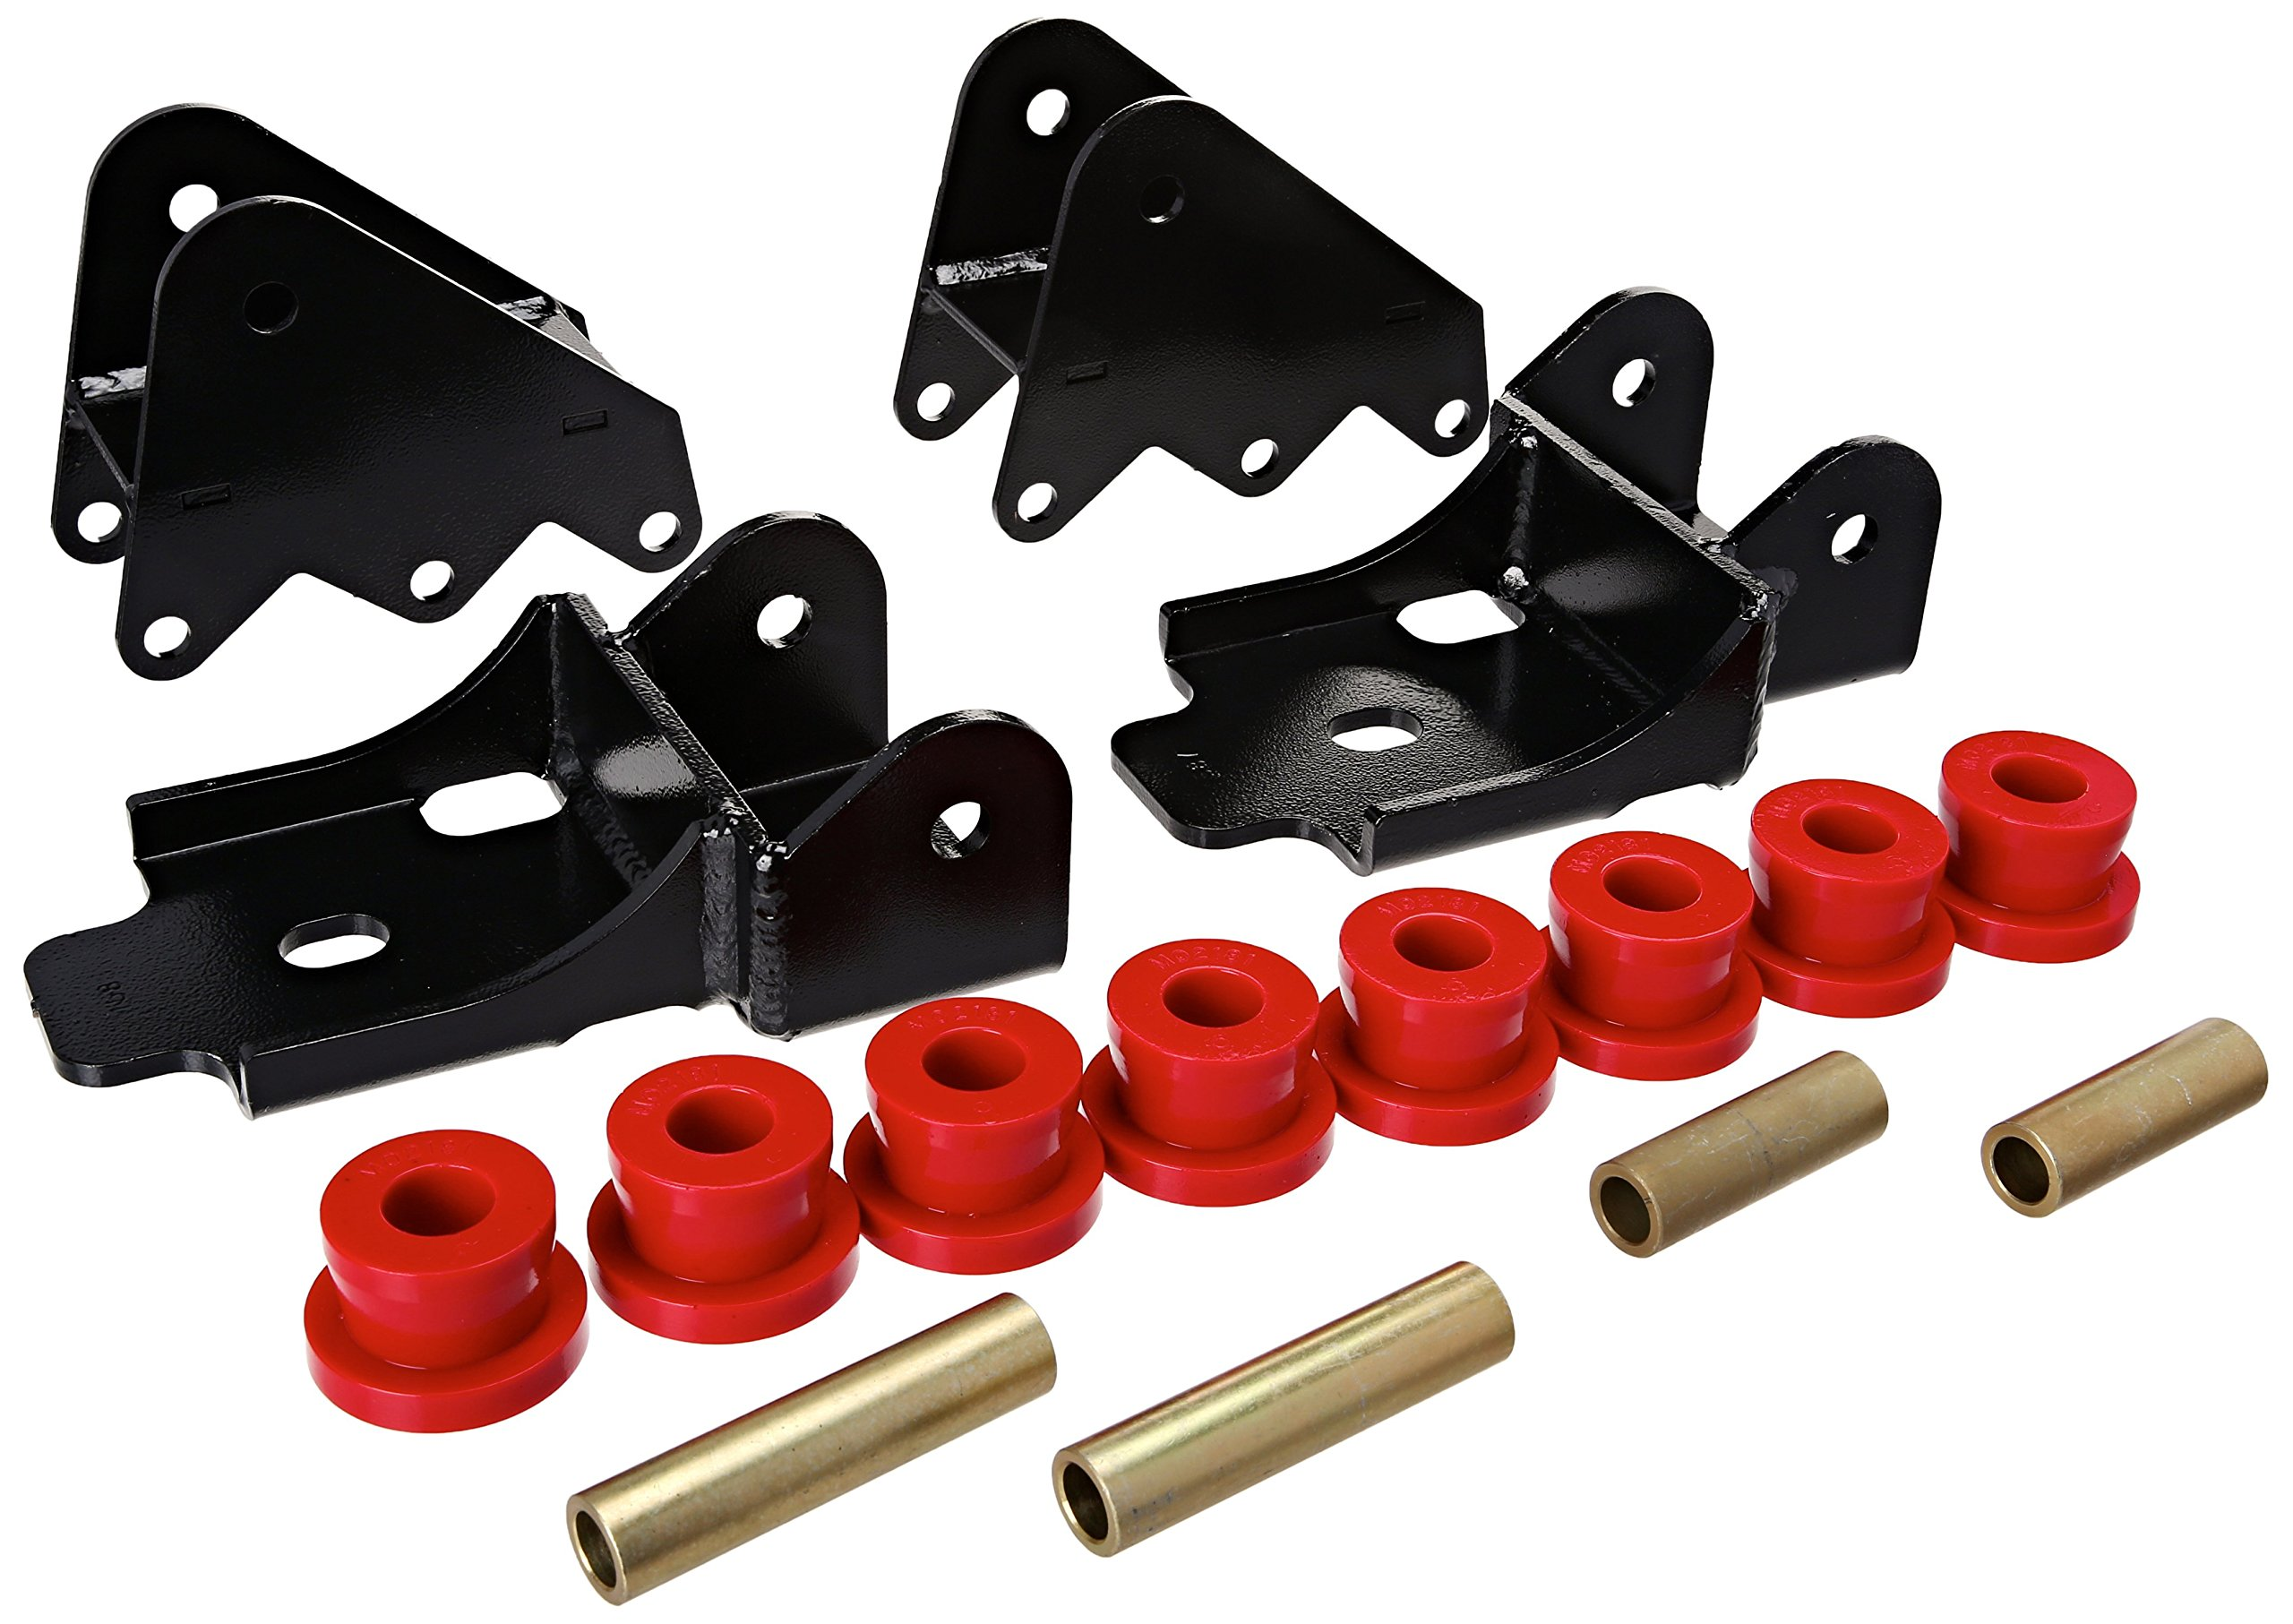 Pro Comp 72098B Traction Bar Mount Kit for Dodge Ram 2500/3500 03-09 by Pro Comp